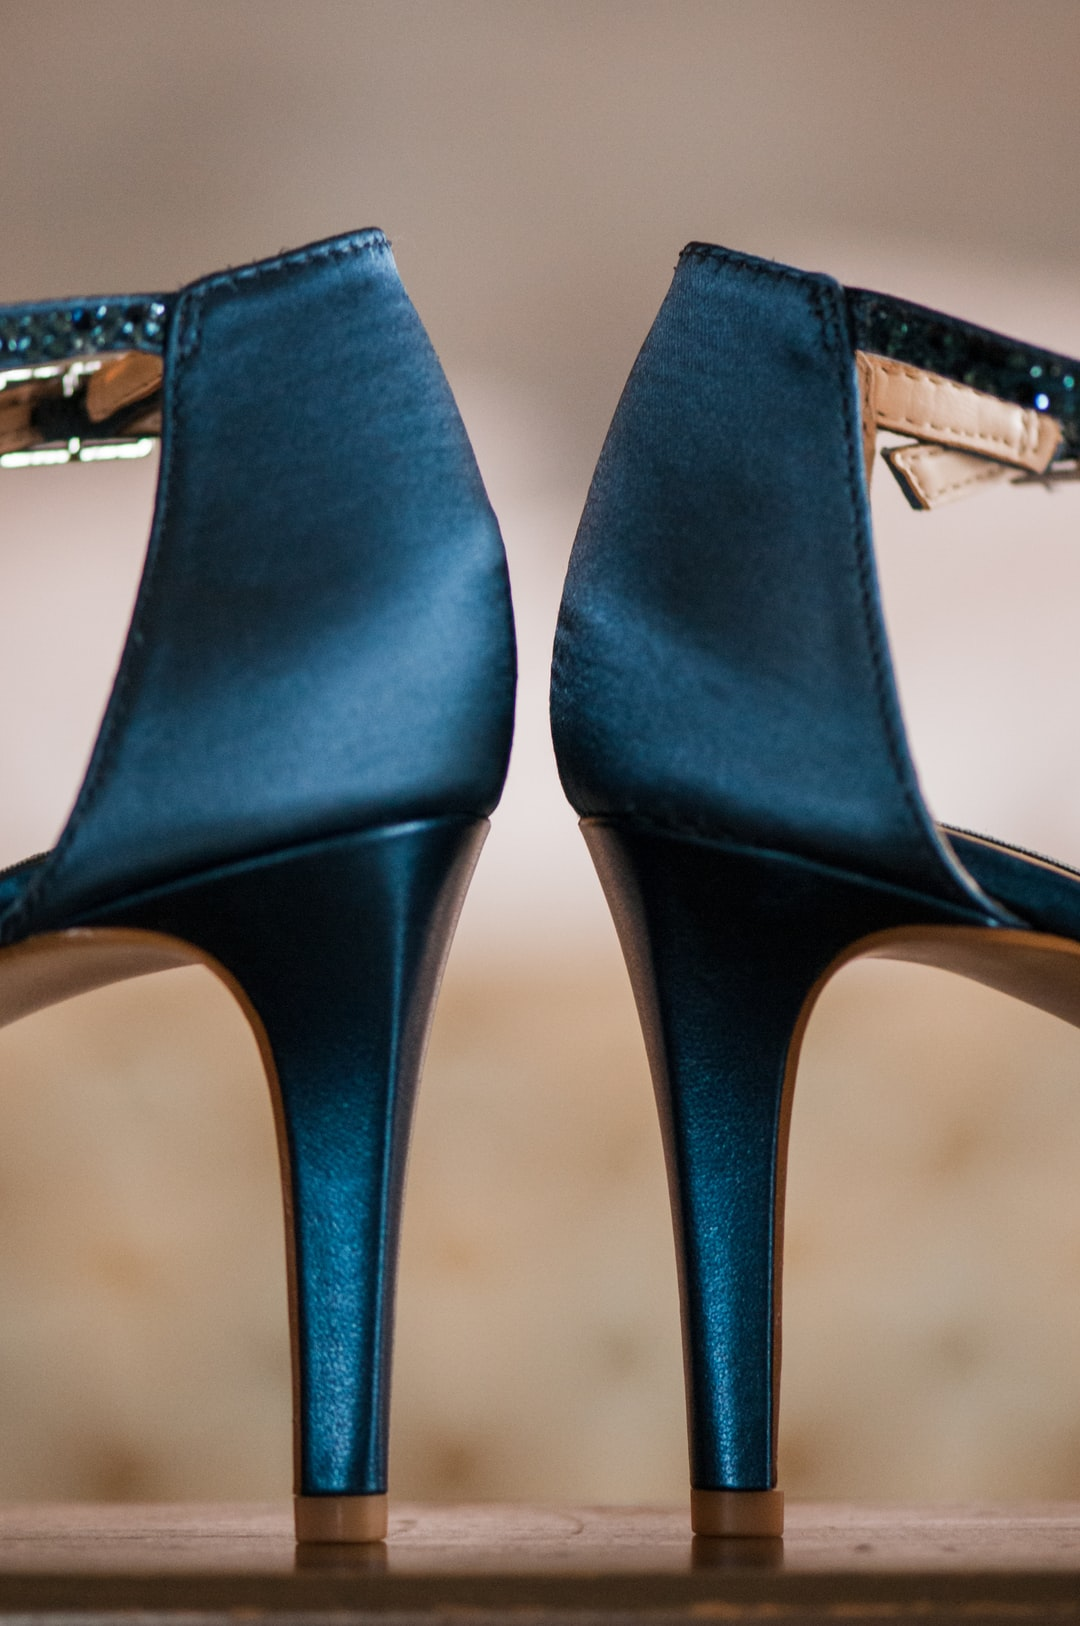 Blue high heeled (high heel) women's shoes. The blue is a smoky grey teal blue and the material is silky.